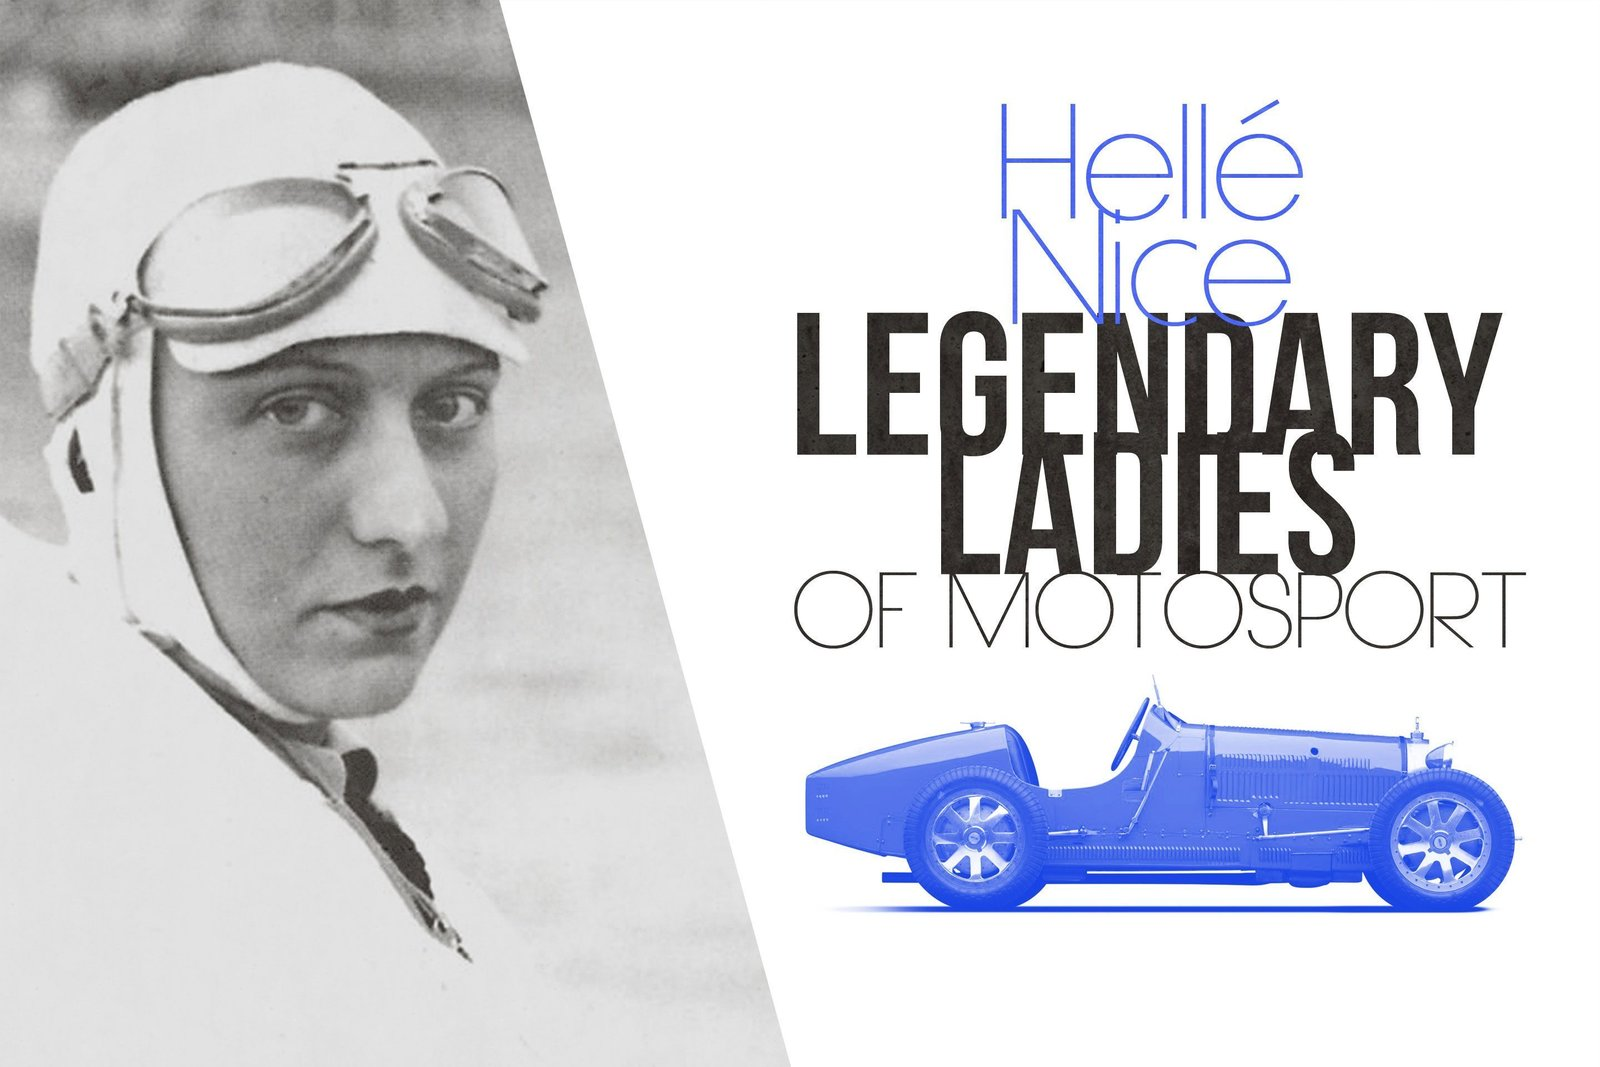 Photo 1 of 9 in Legendary Ladies Of Motorsport: Hellé Nice